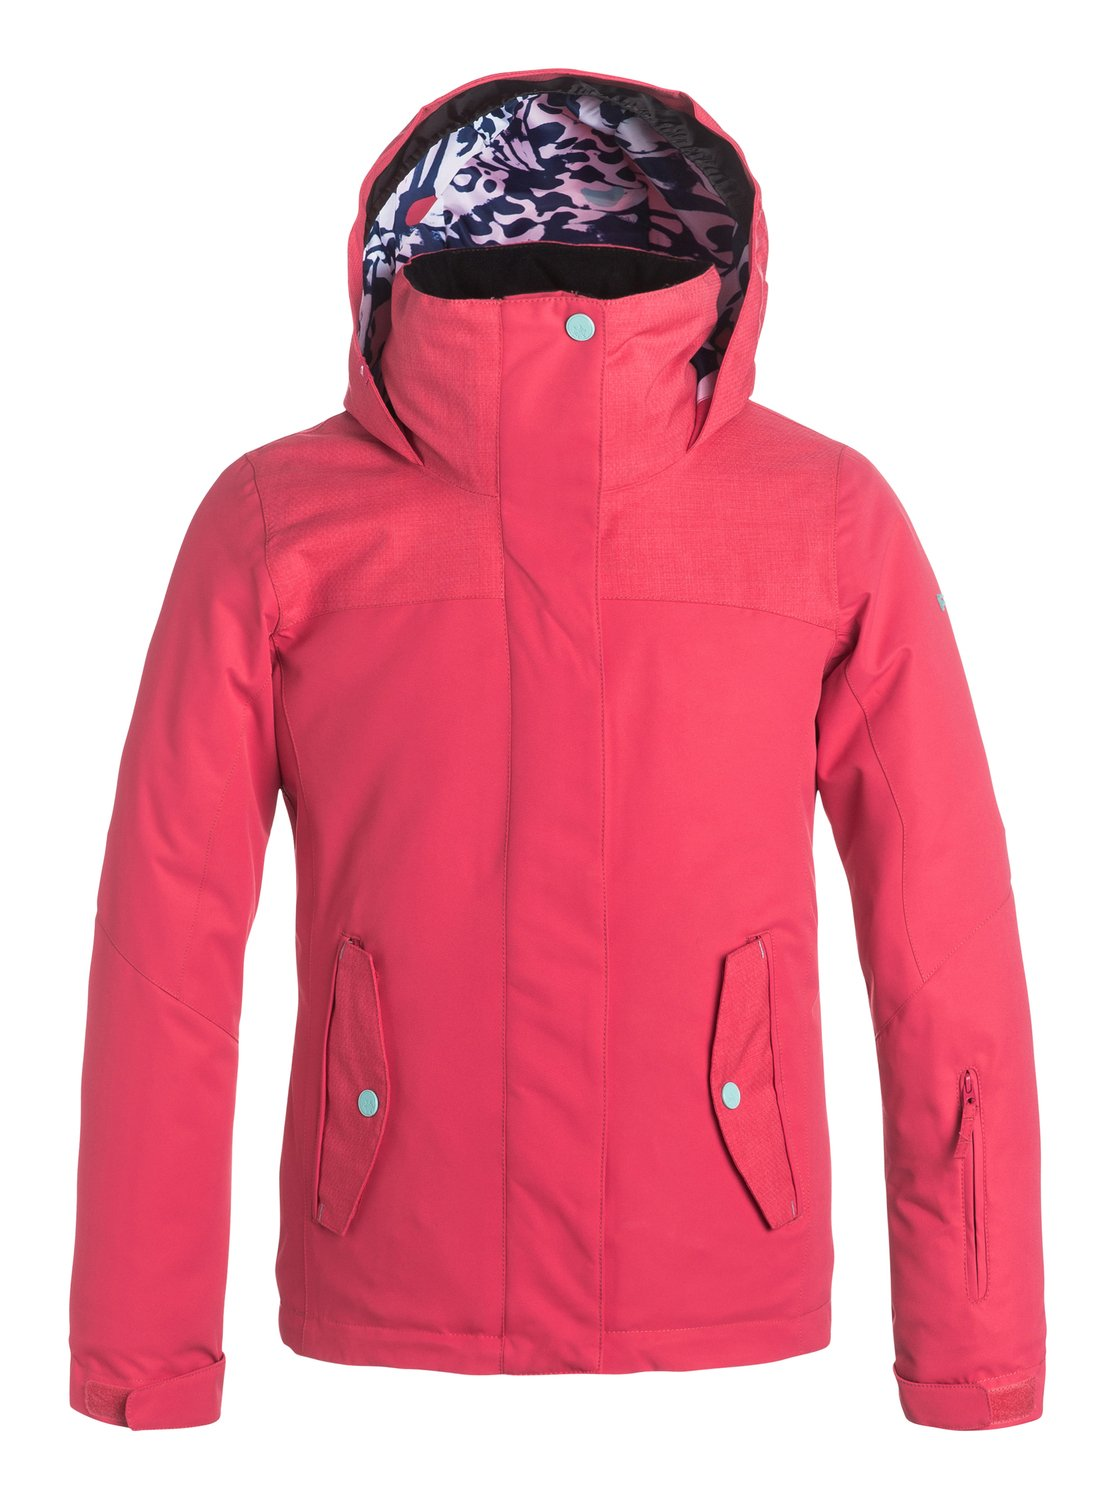 Roxy Jetty Solid Snowboard Jacket Ergtj03016 Roxy